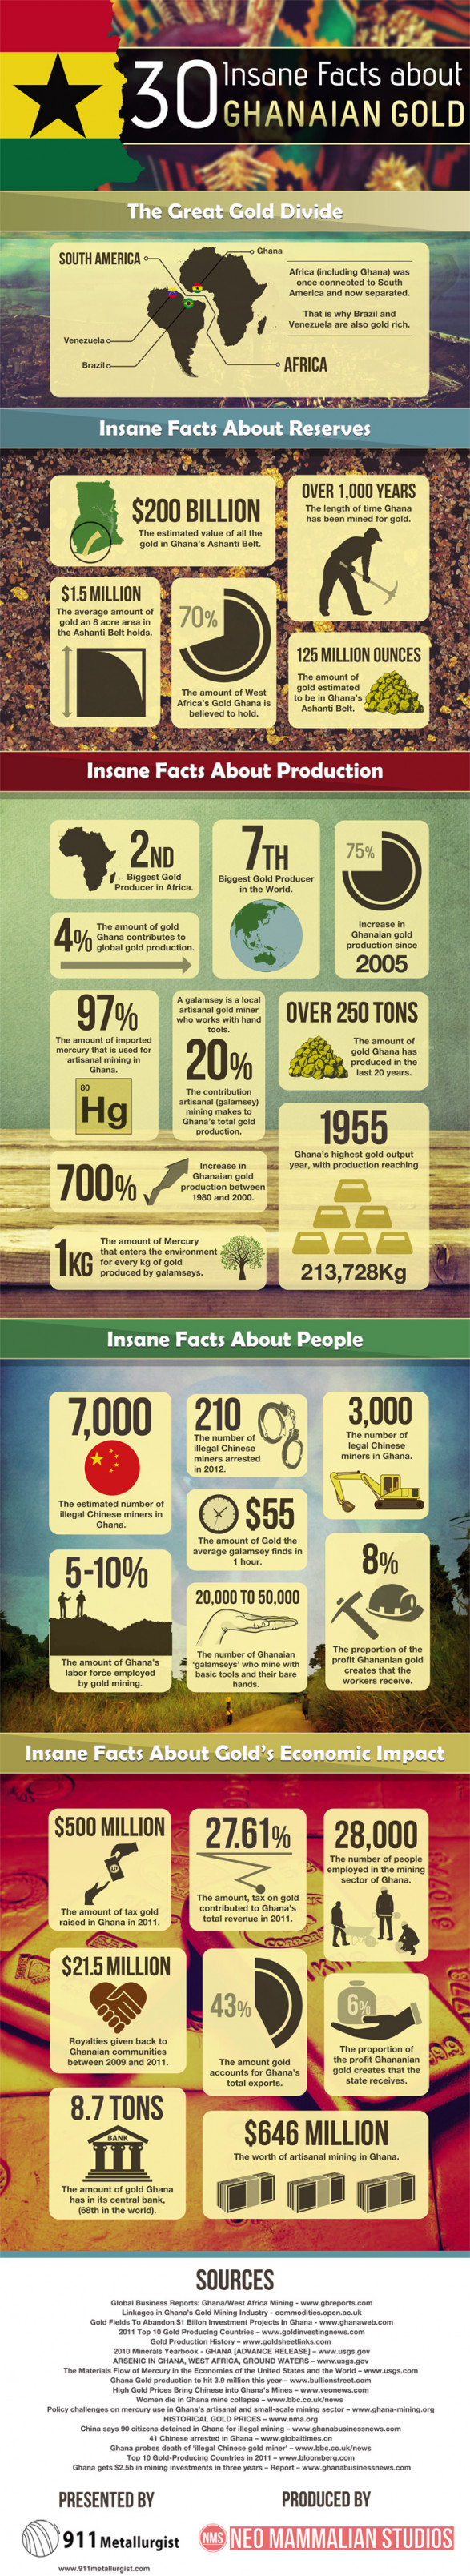 30 Insane Facts about Ghanaian Gold [Infographic]